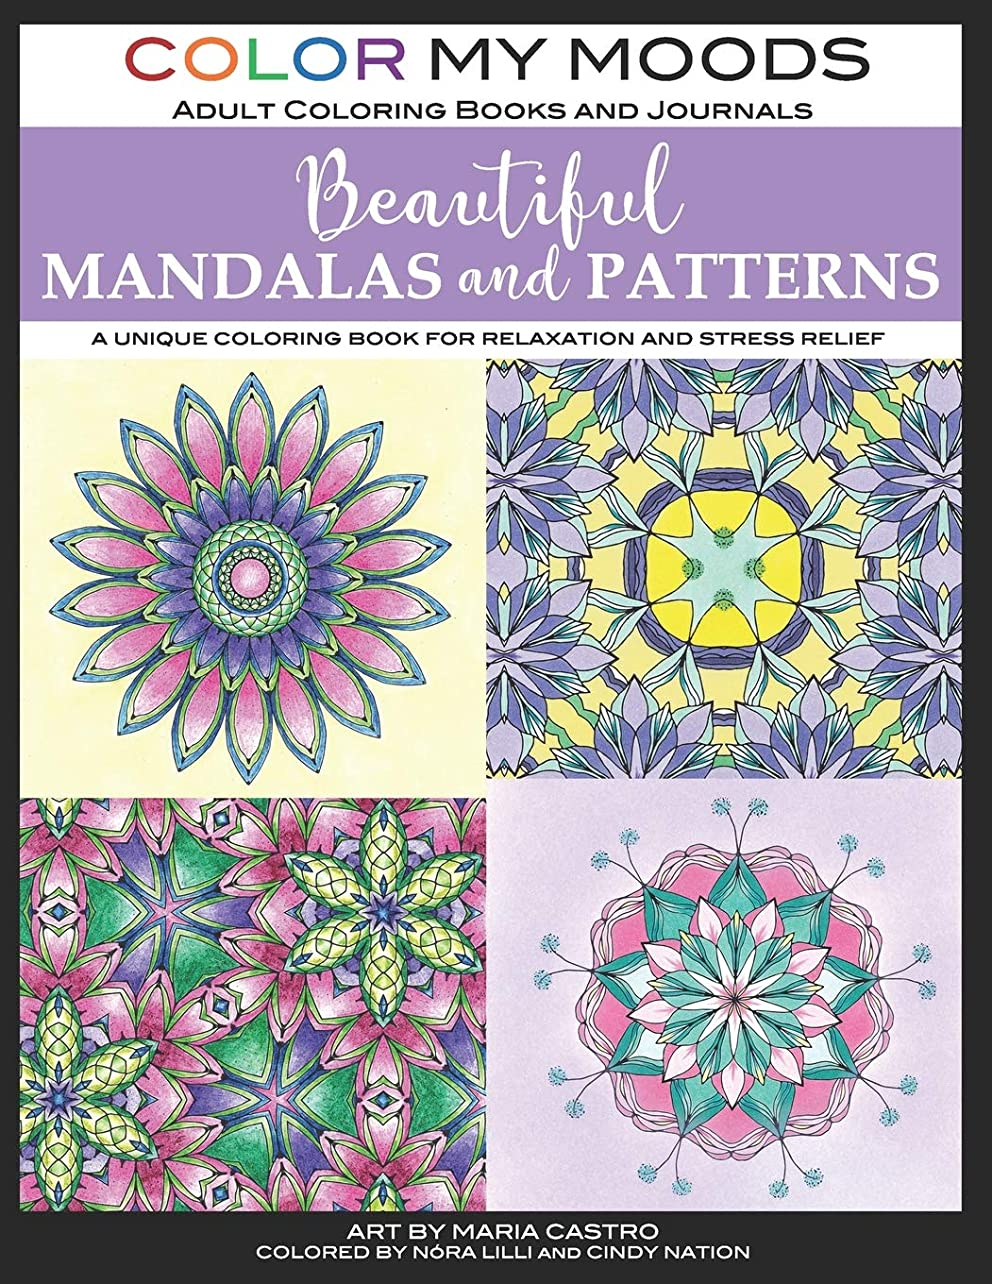 精緻化ブラストれるBeautiful Mandalas and Patterns by Color My Moods Adult Coloring Books and Journals: Unique Mandalas and Patterns Adult Coloring Book for Relaxation, Stress Relief, Meditation, Happiness, and Fun!